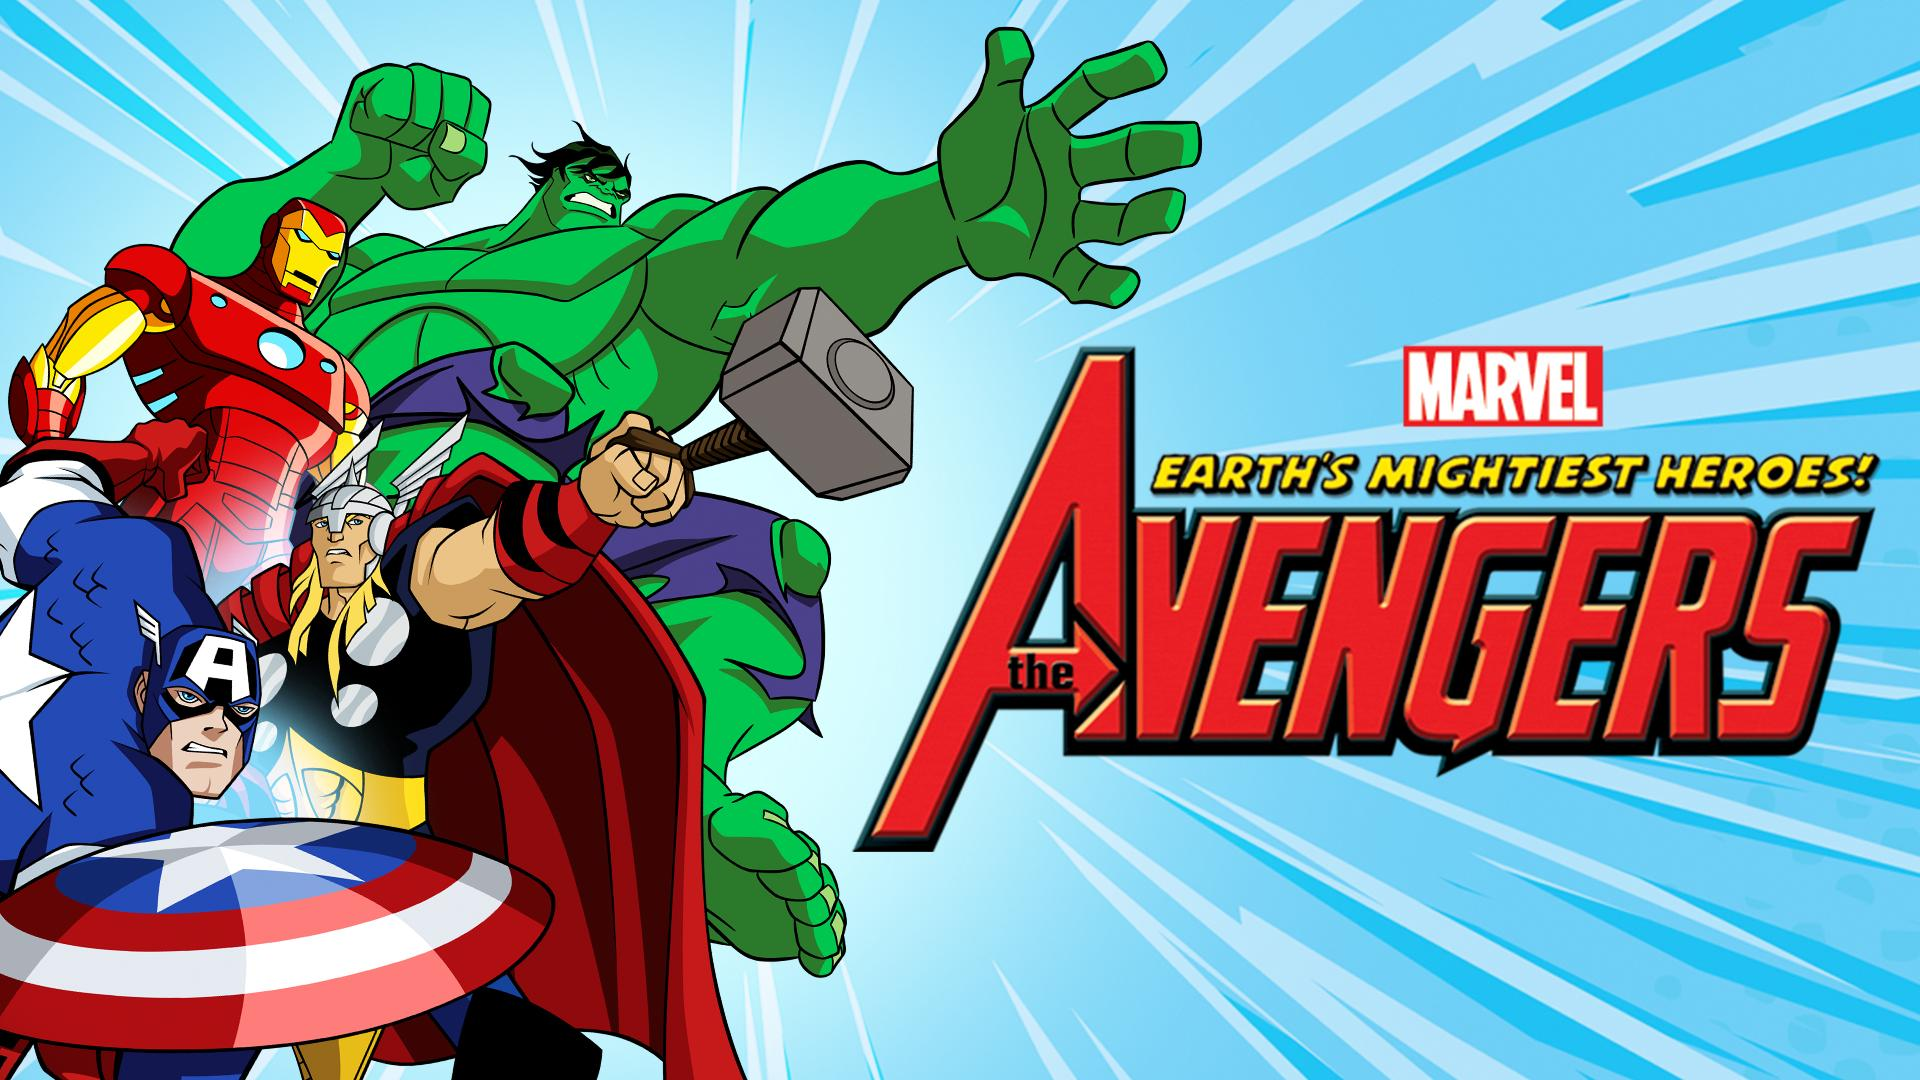 The Avengers Earth's Mightiest Heroes (2010).jpg